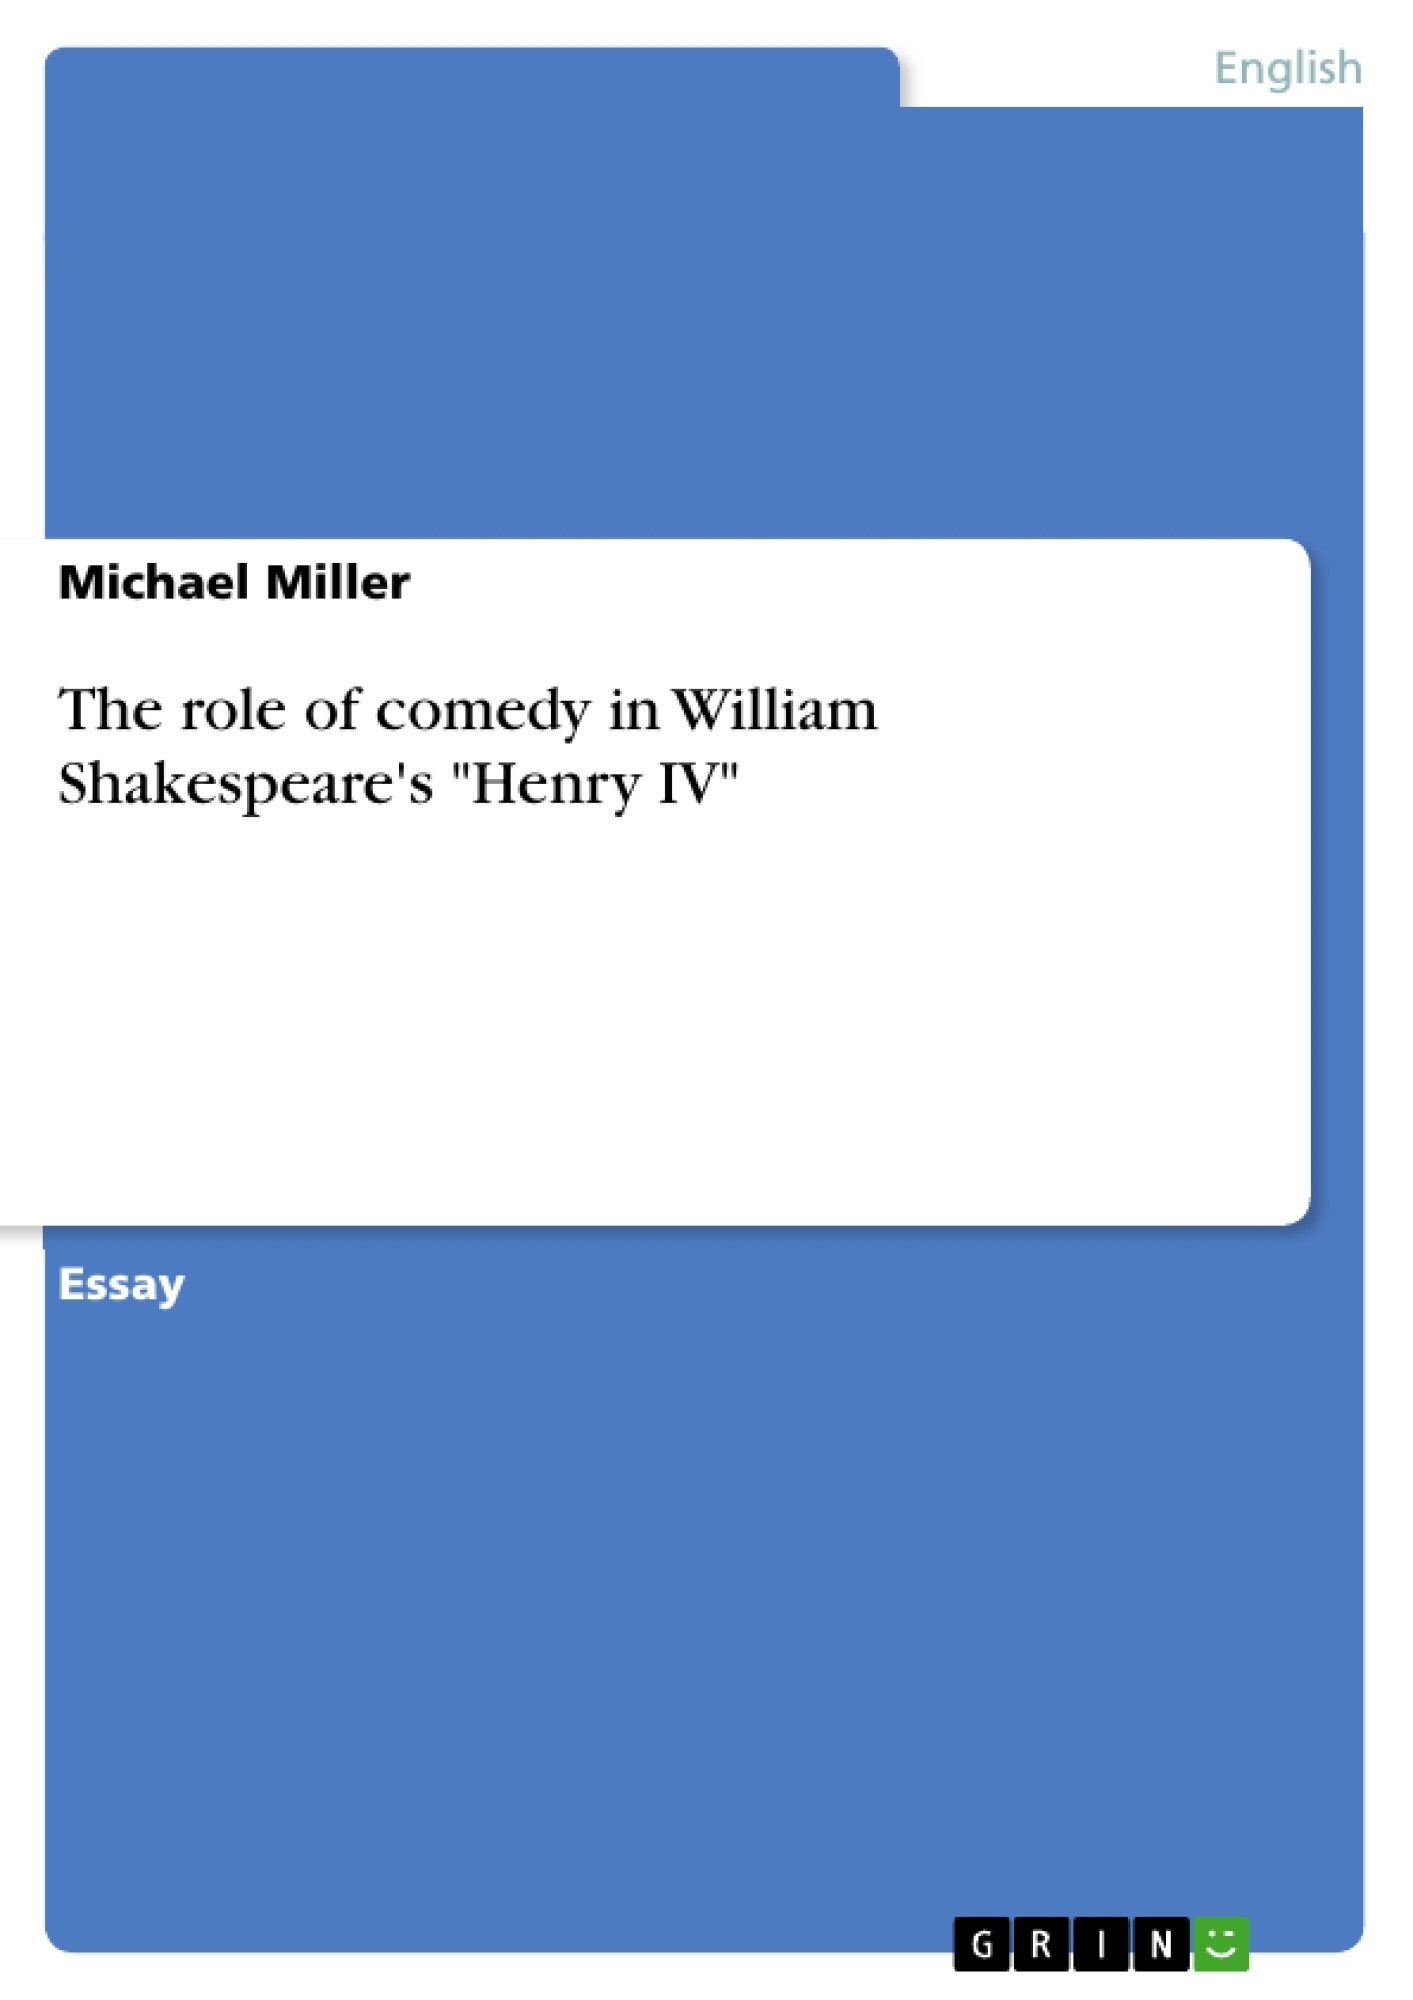 the role of comedy in william shakespeare s henry iv publish  upload your own papers earn money and win an iphone x